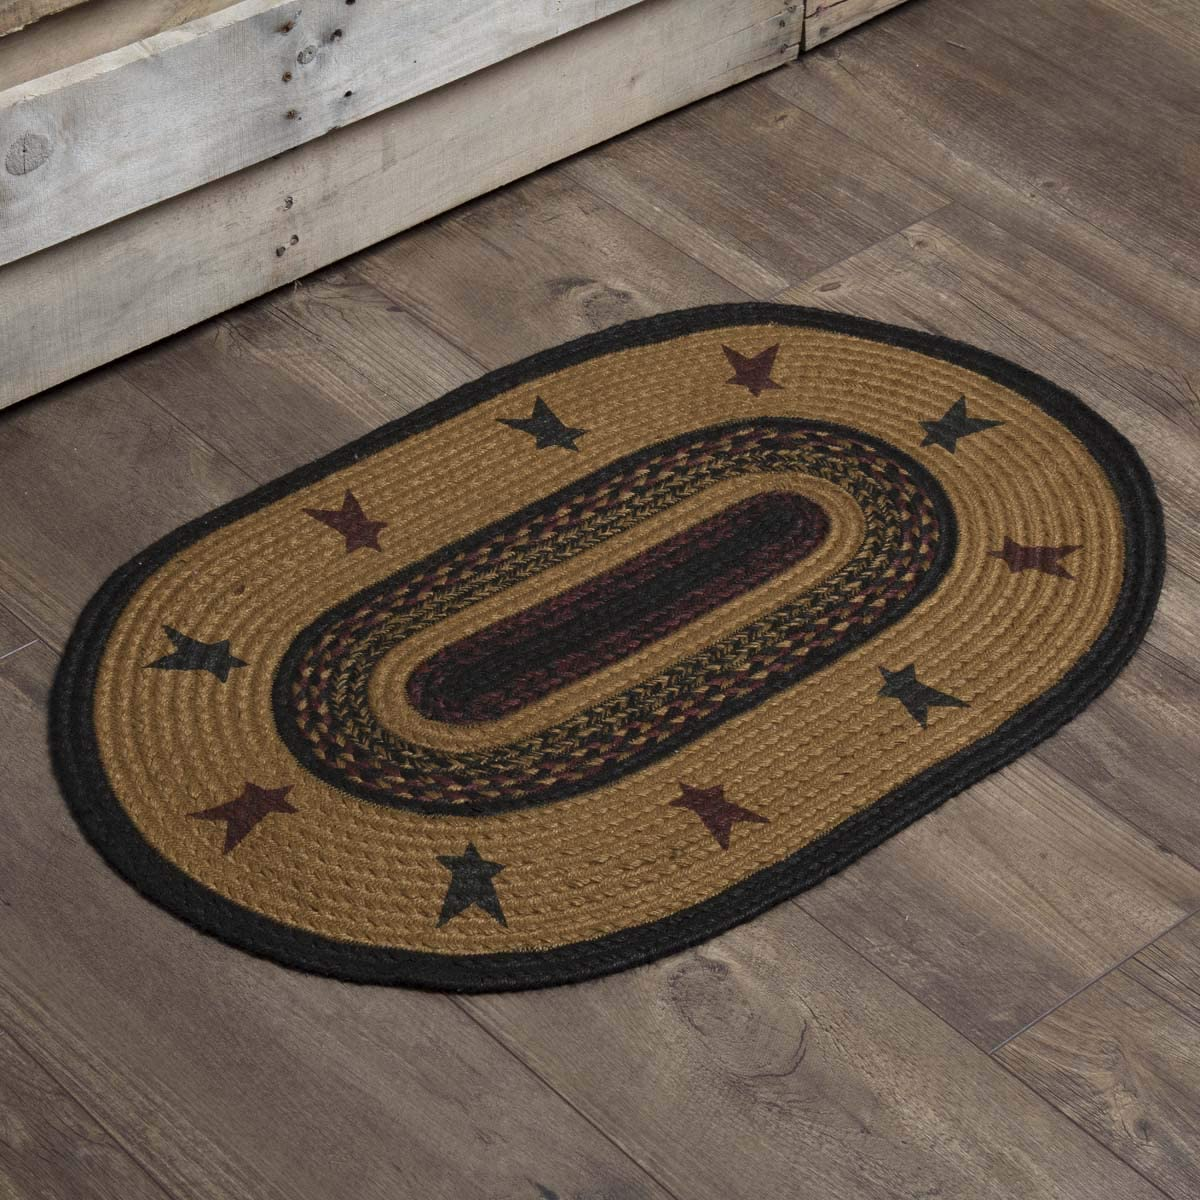 VHC Brands 37915 Primitive Flooring Settlement Star Jute Stenciled Oval Rug, 1 8 x 2 6 , Mustard Tan Yellow